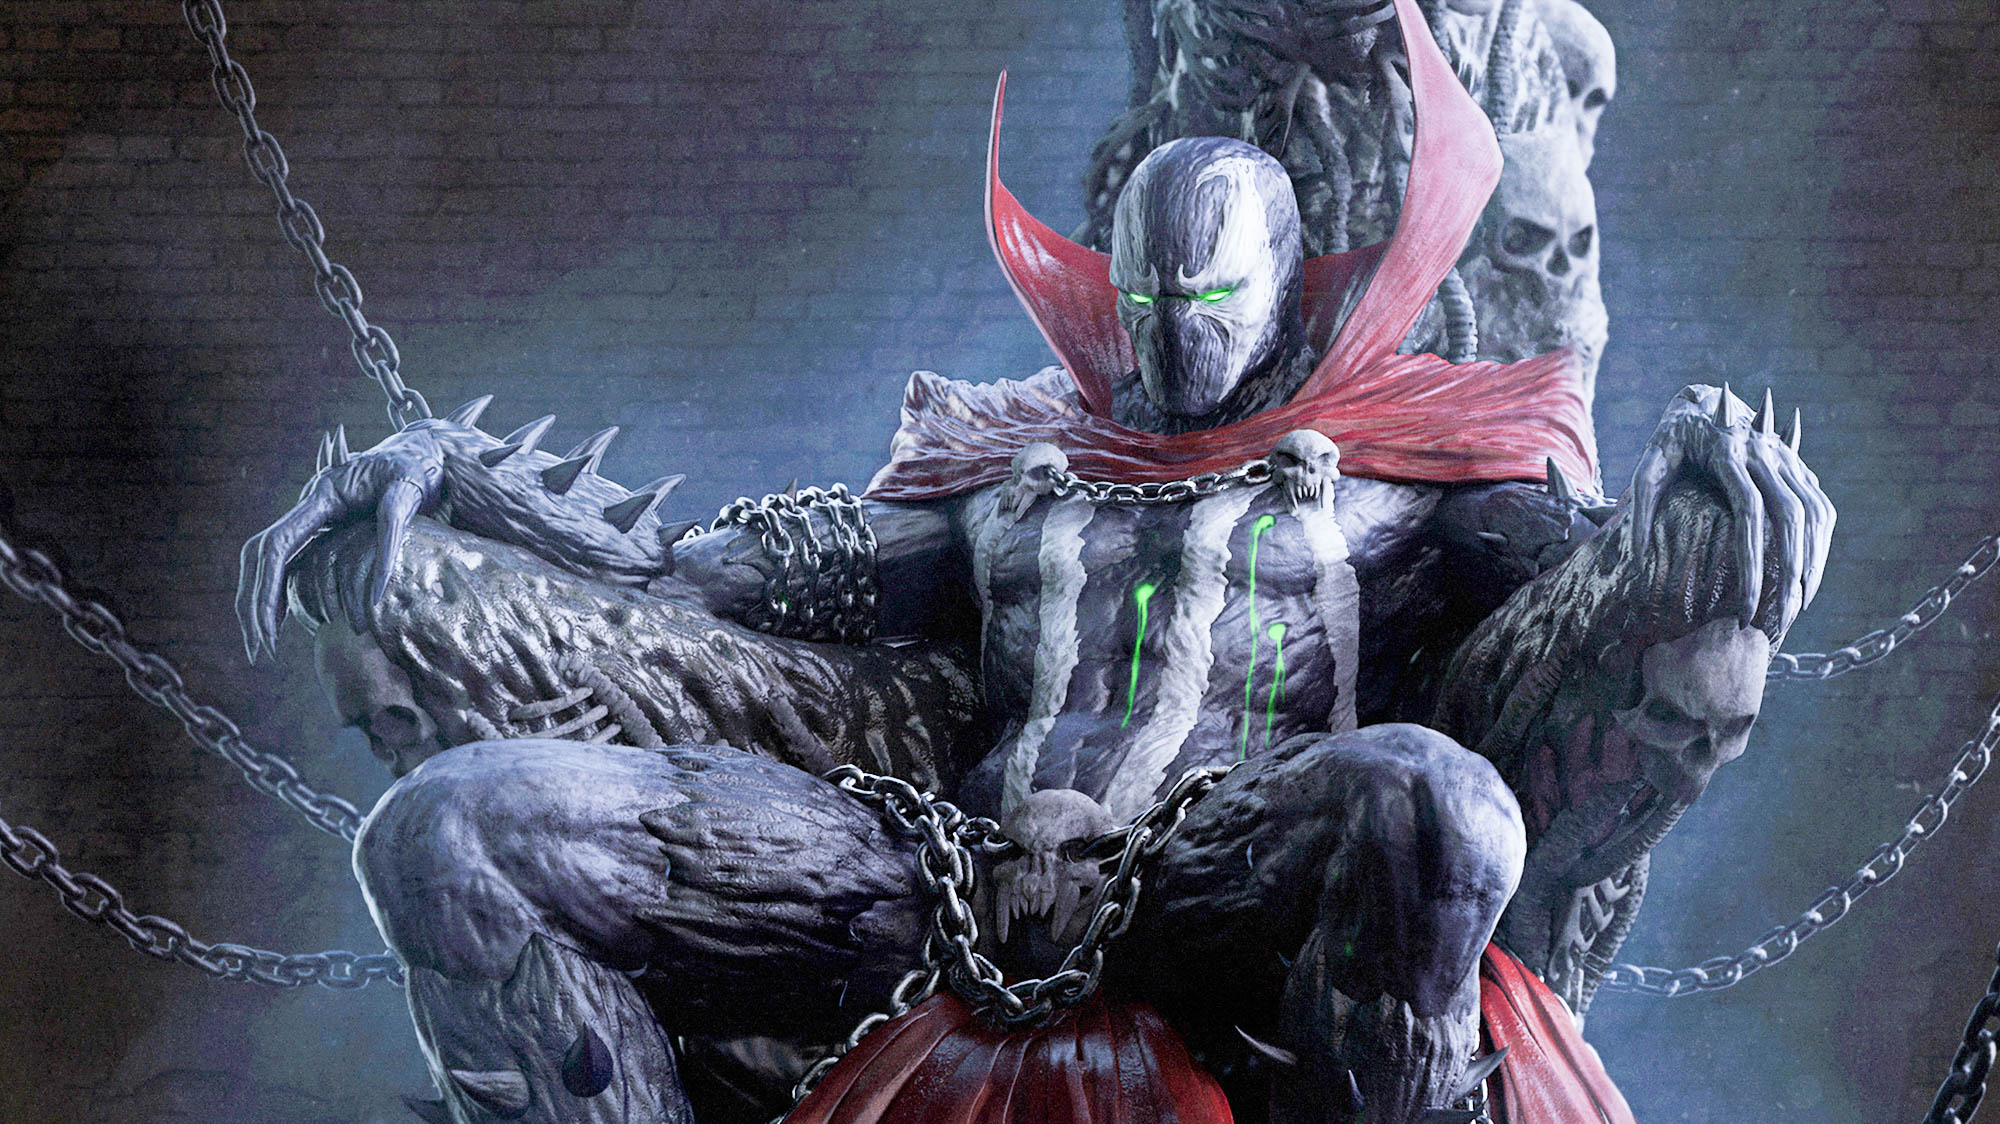 Spawn Awesoome Hd Wallpapers In High Definition All Hd Wallpapers